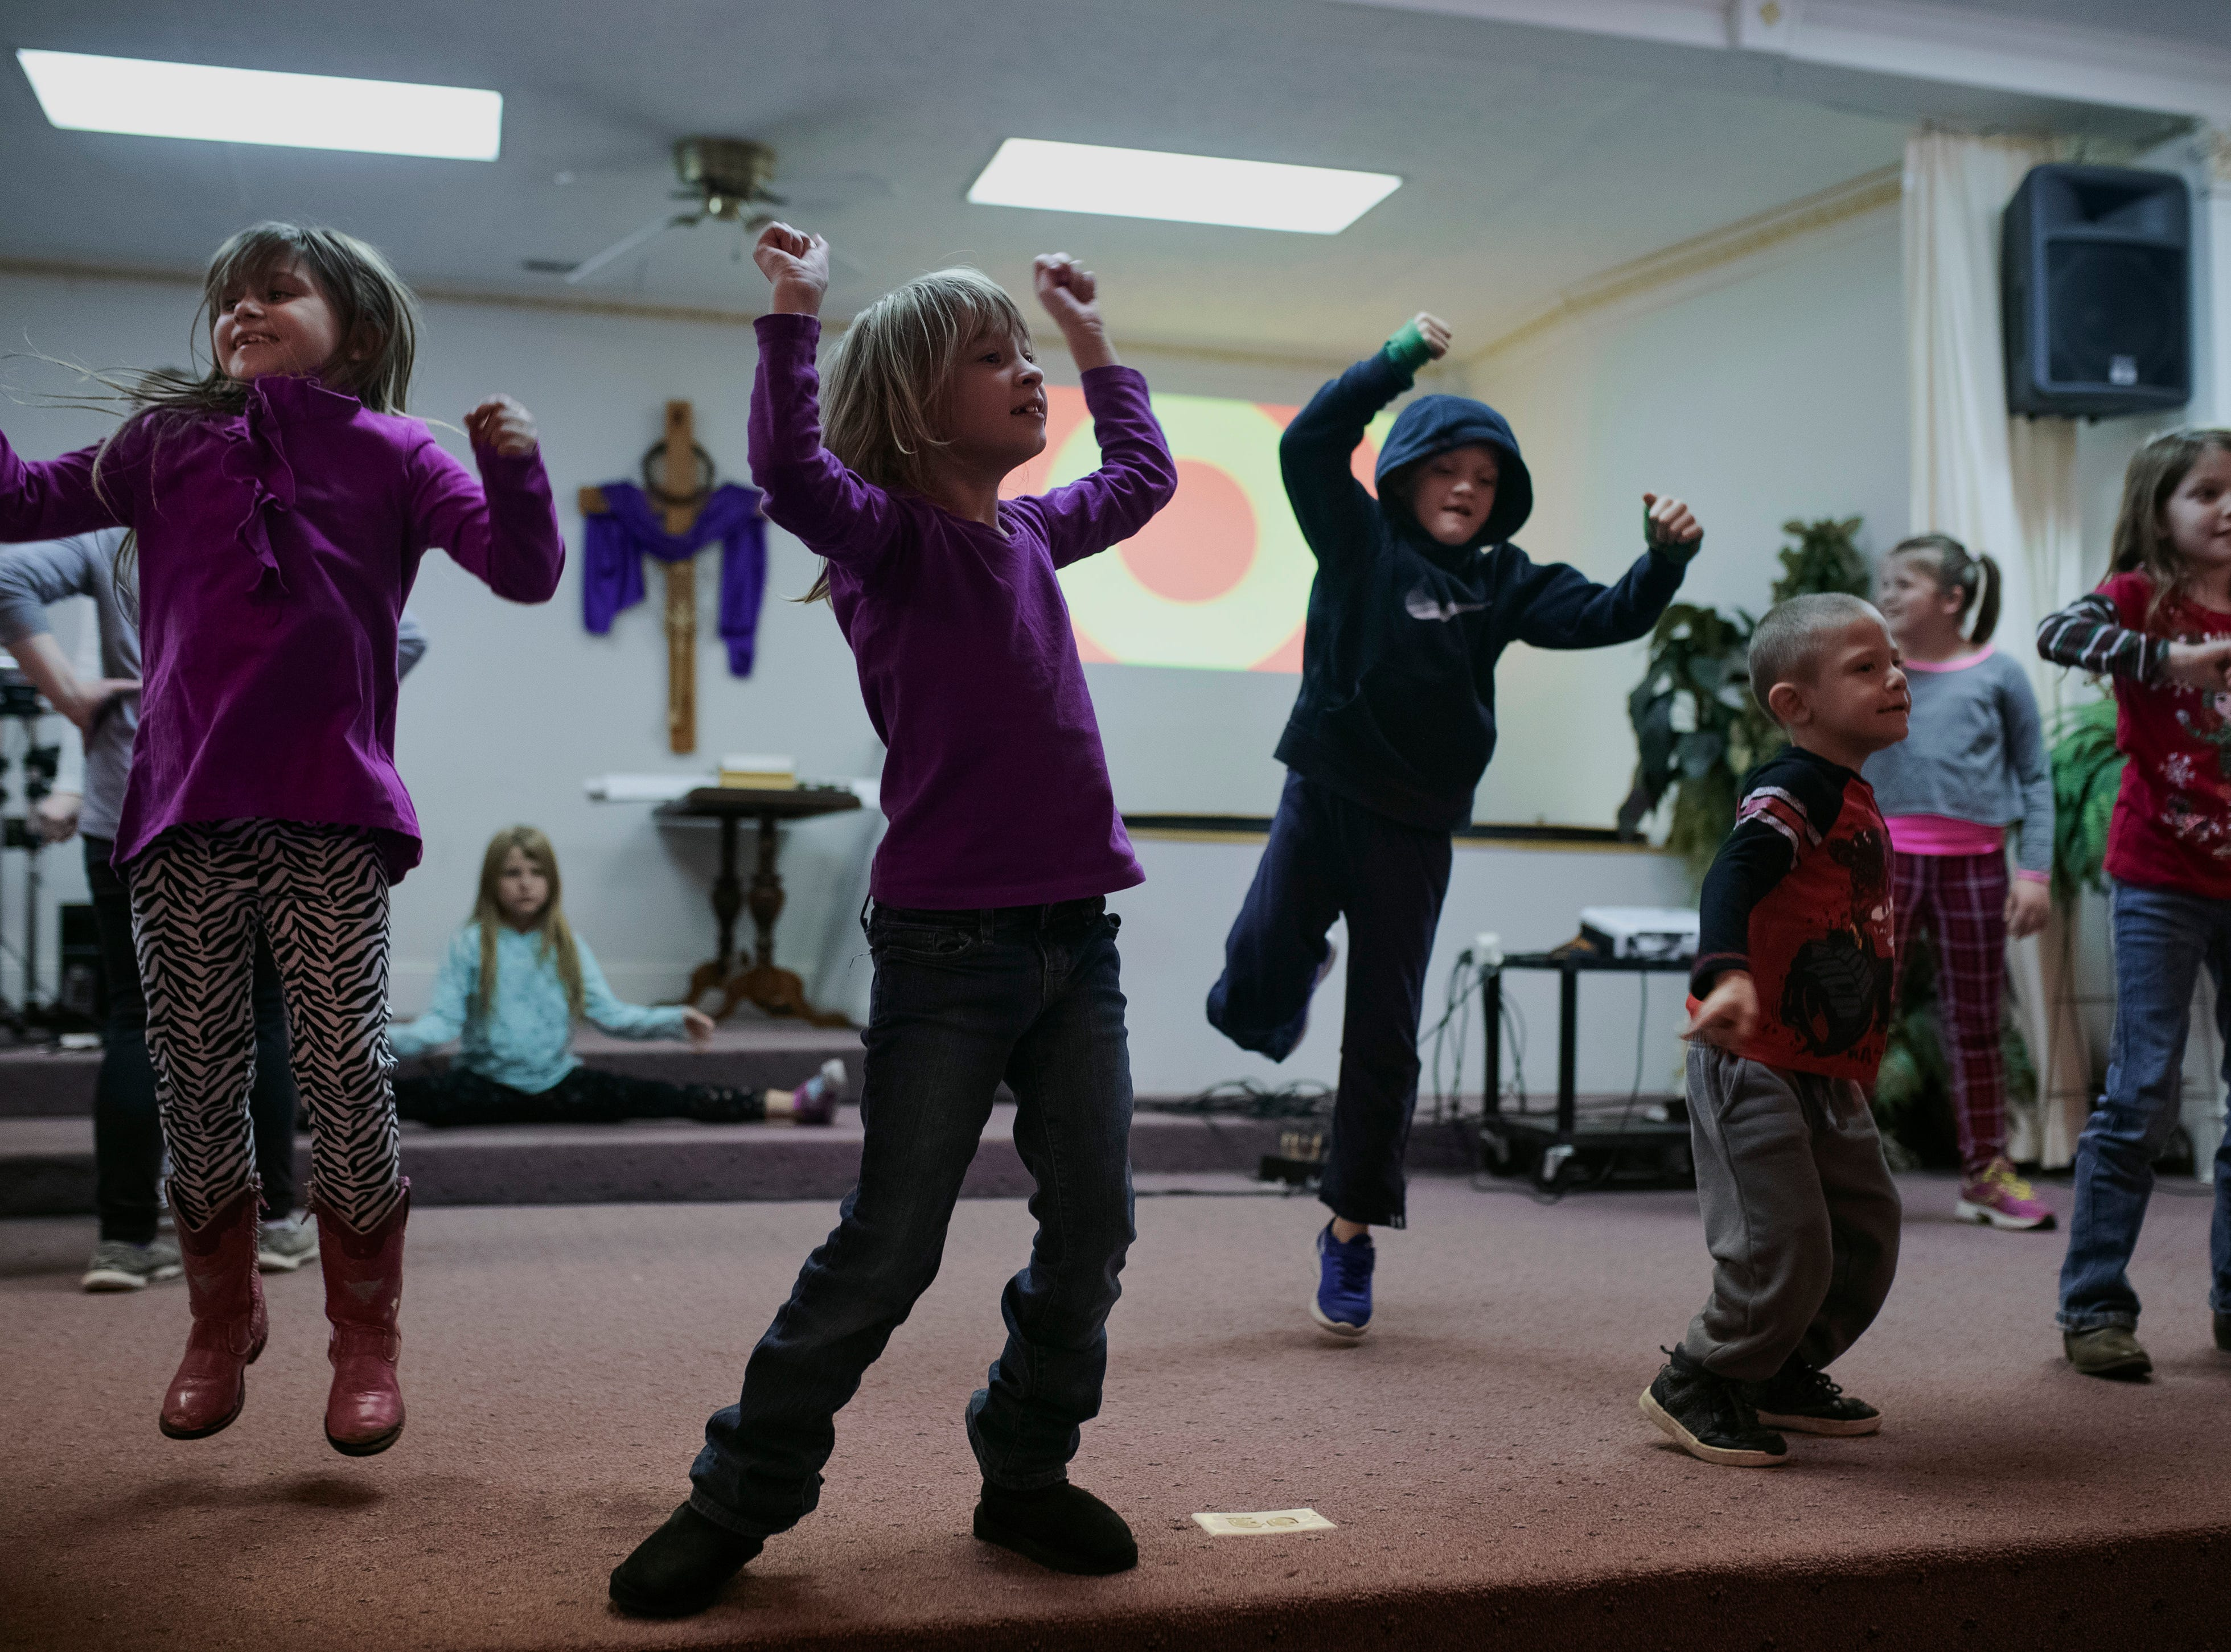 Children dance to christian music inside Hope To Others Church on Austin's north side during a Thursday youth program. The church is heavily involved with youth in the area, but also host numerous weekly recovery and NA meetings. Nov. 29, 2018